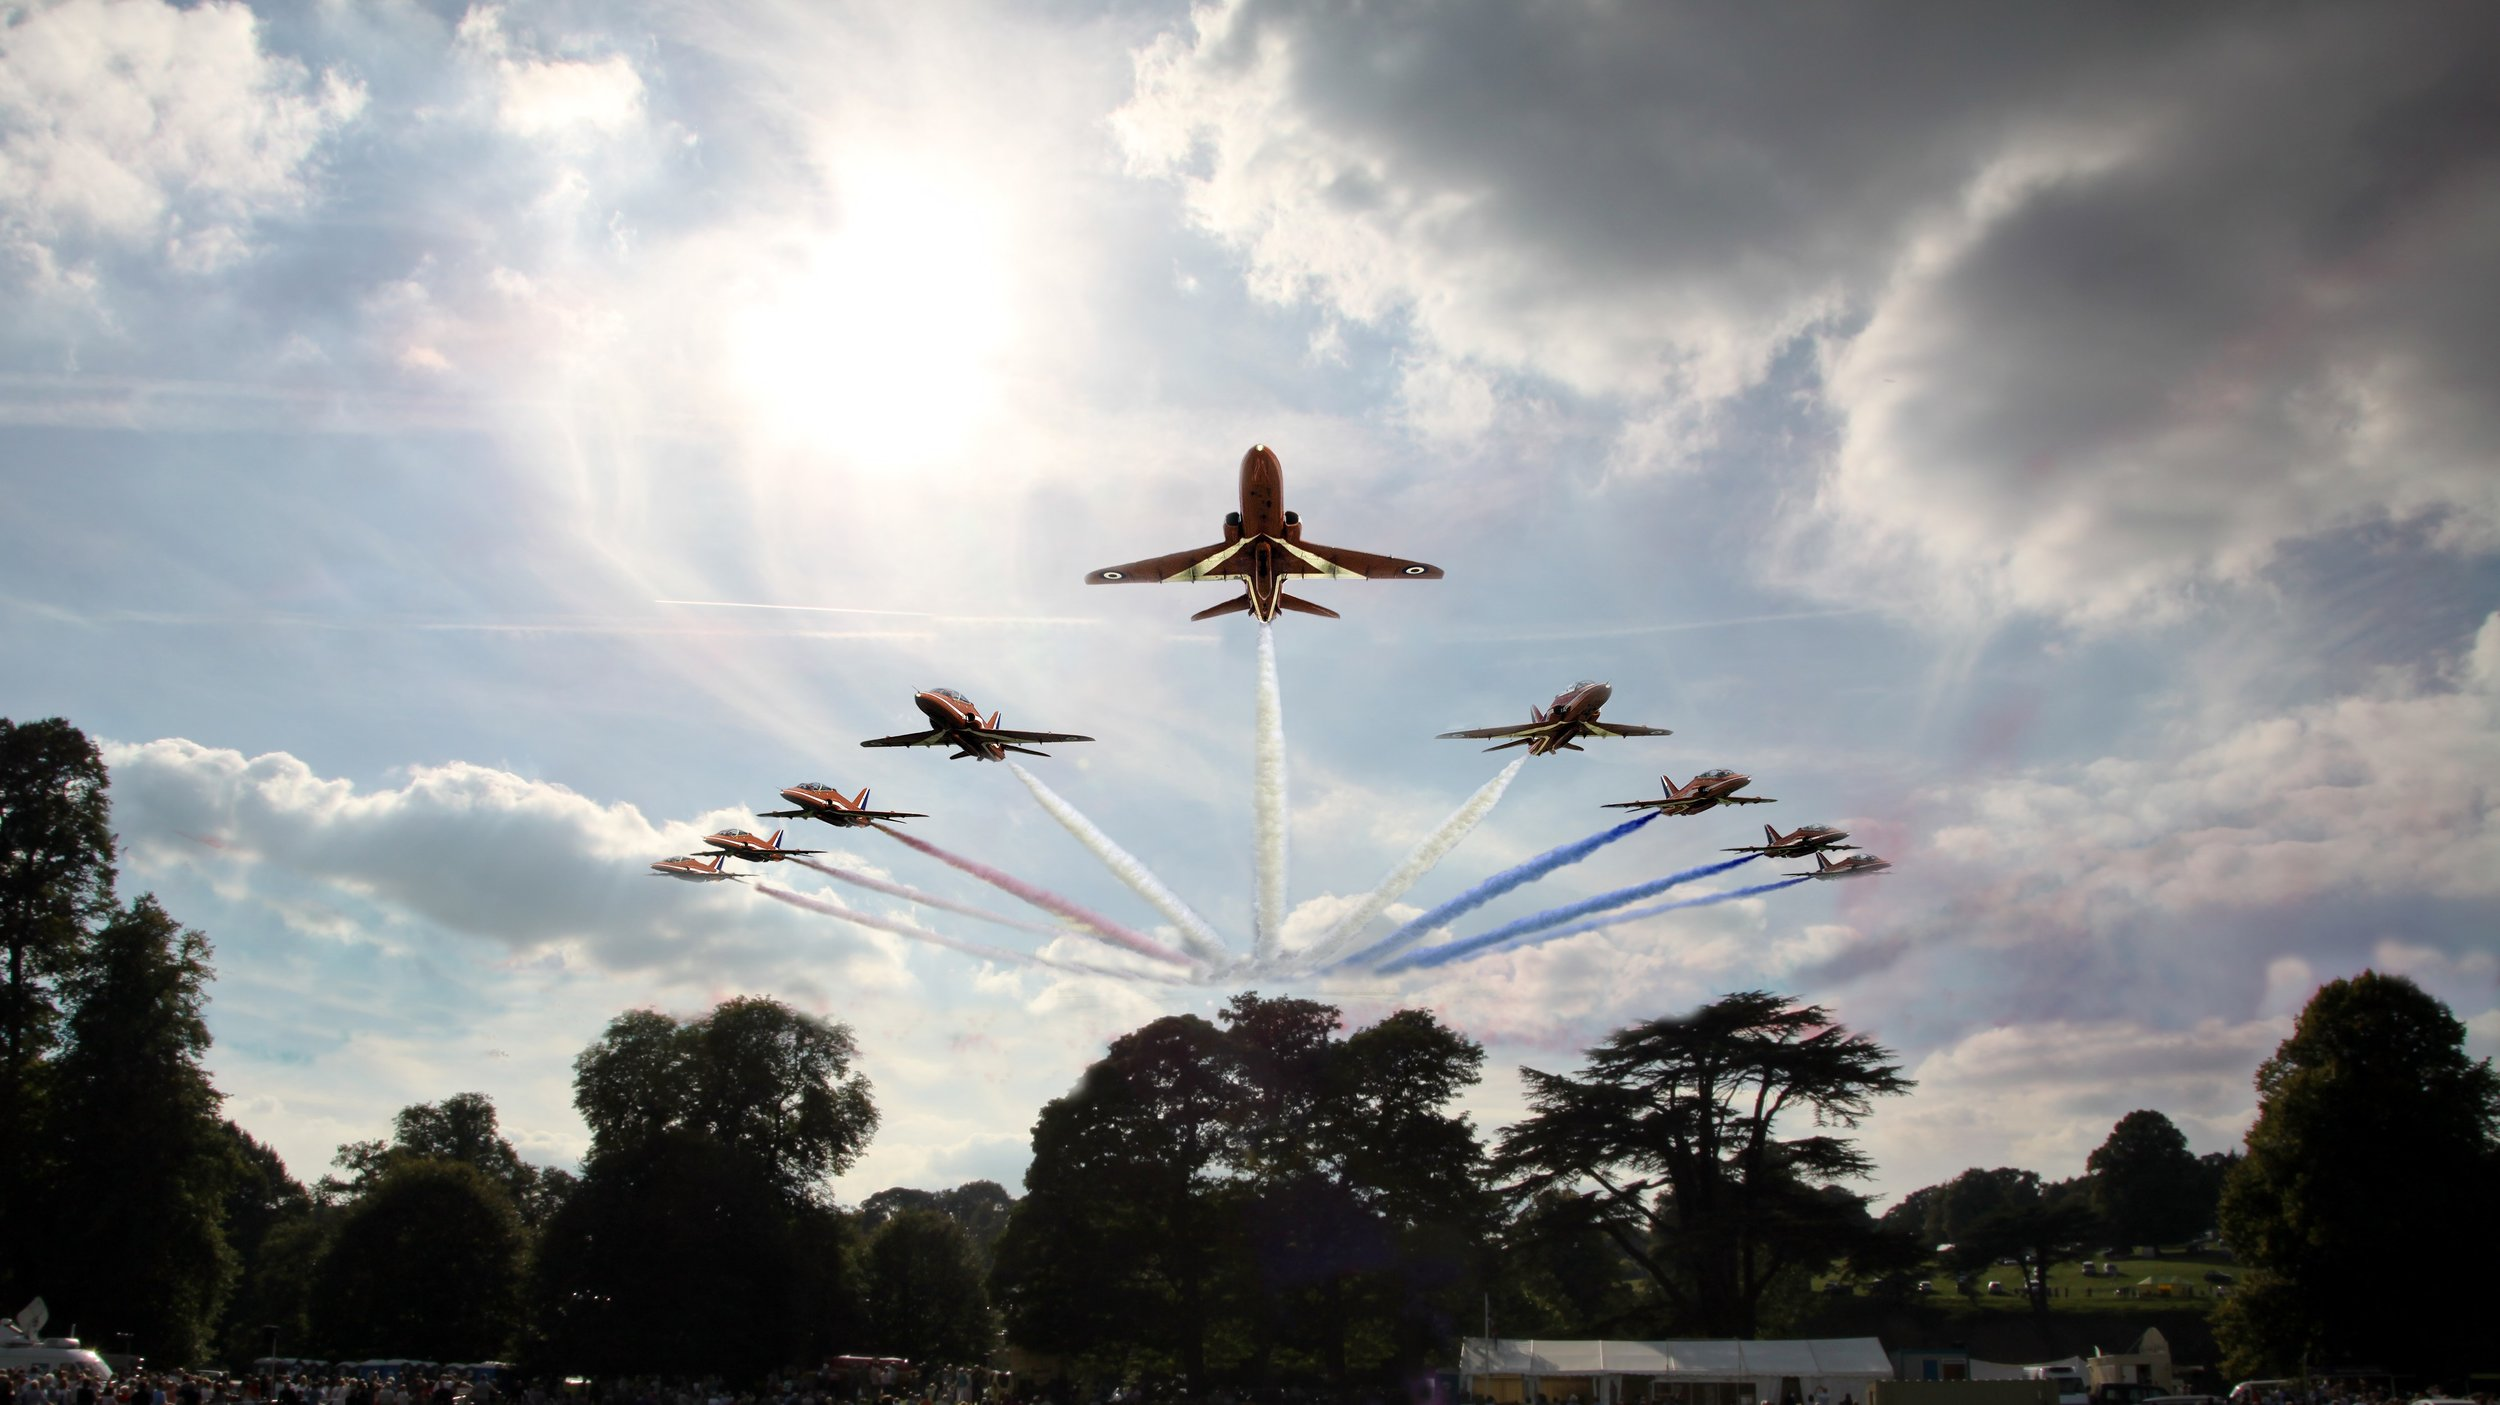 See The Red Arrows in action